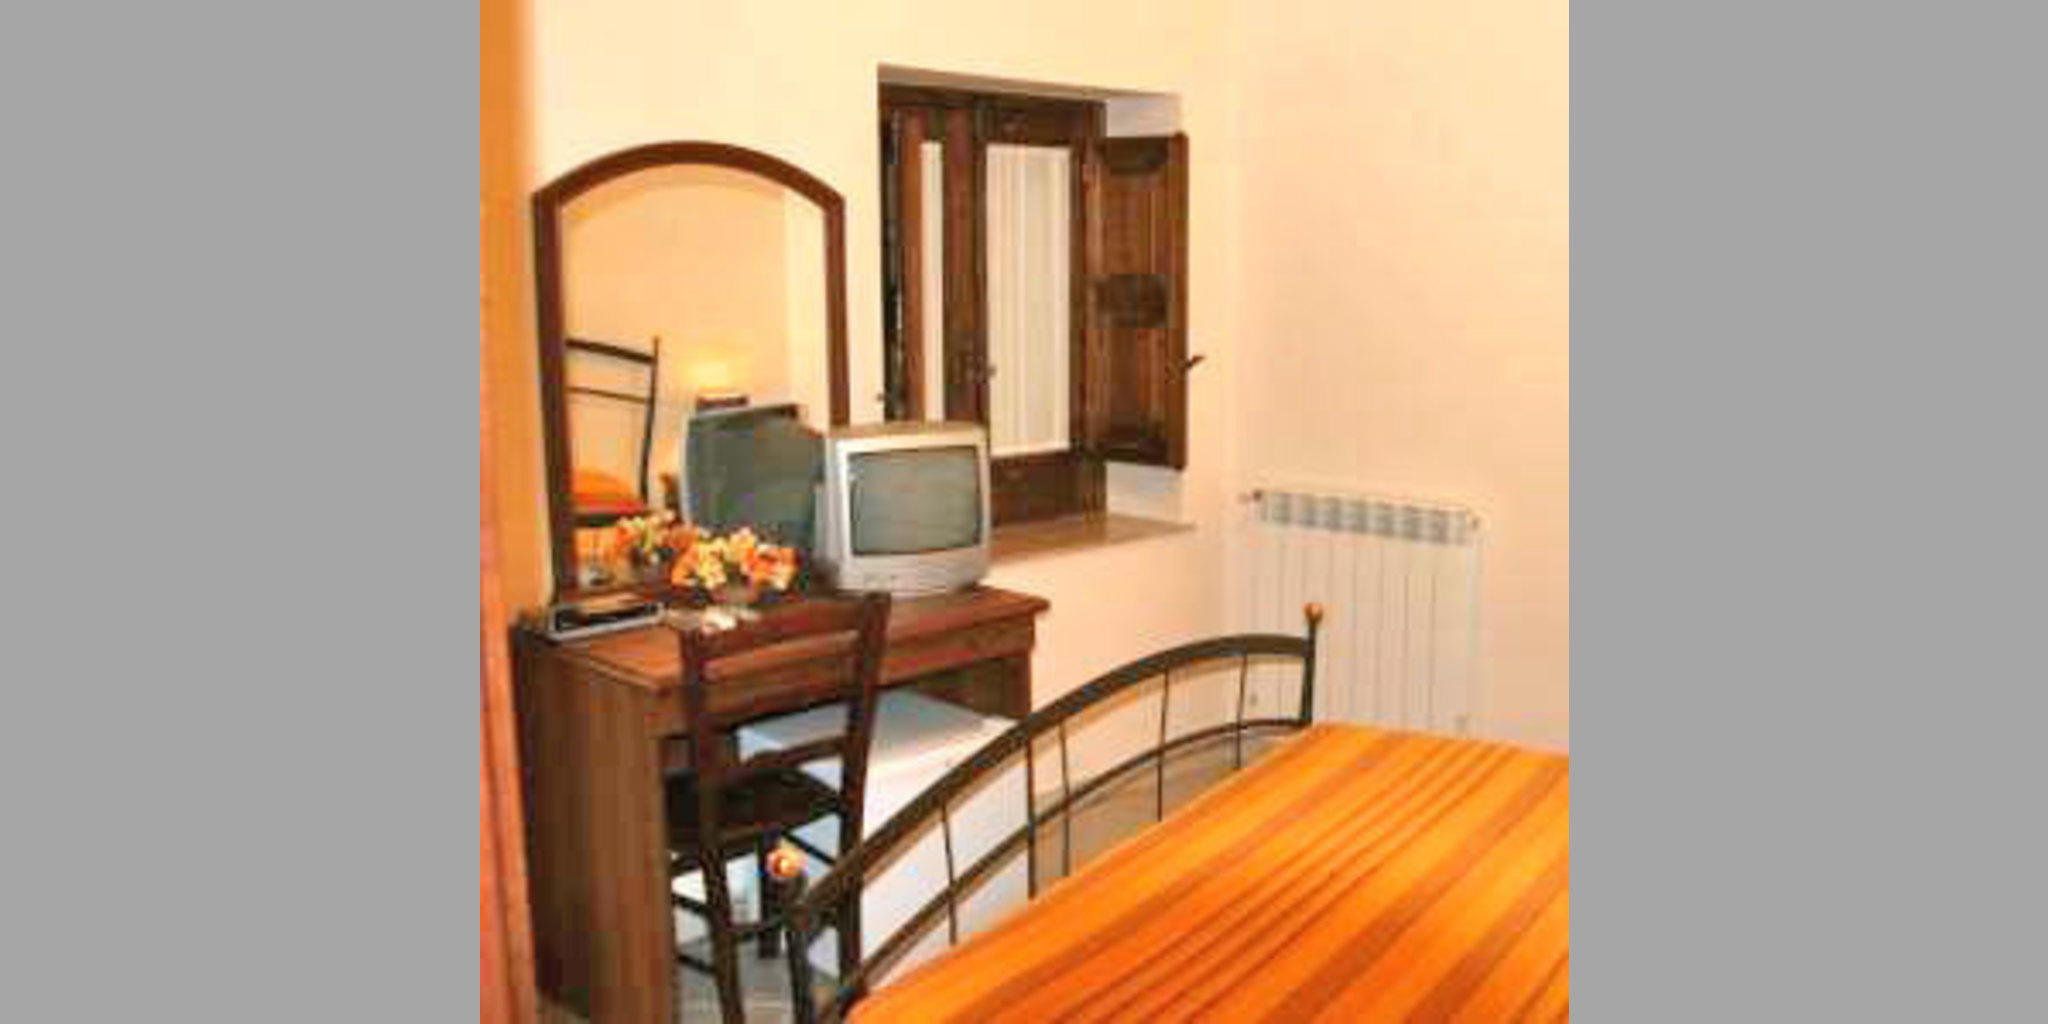 Bed & Breakfast Caltagirone - Caltagirone_